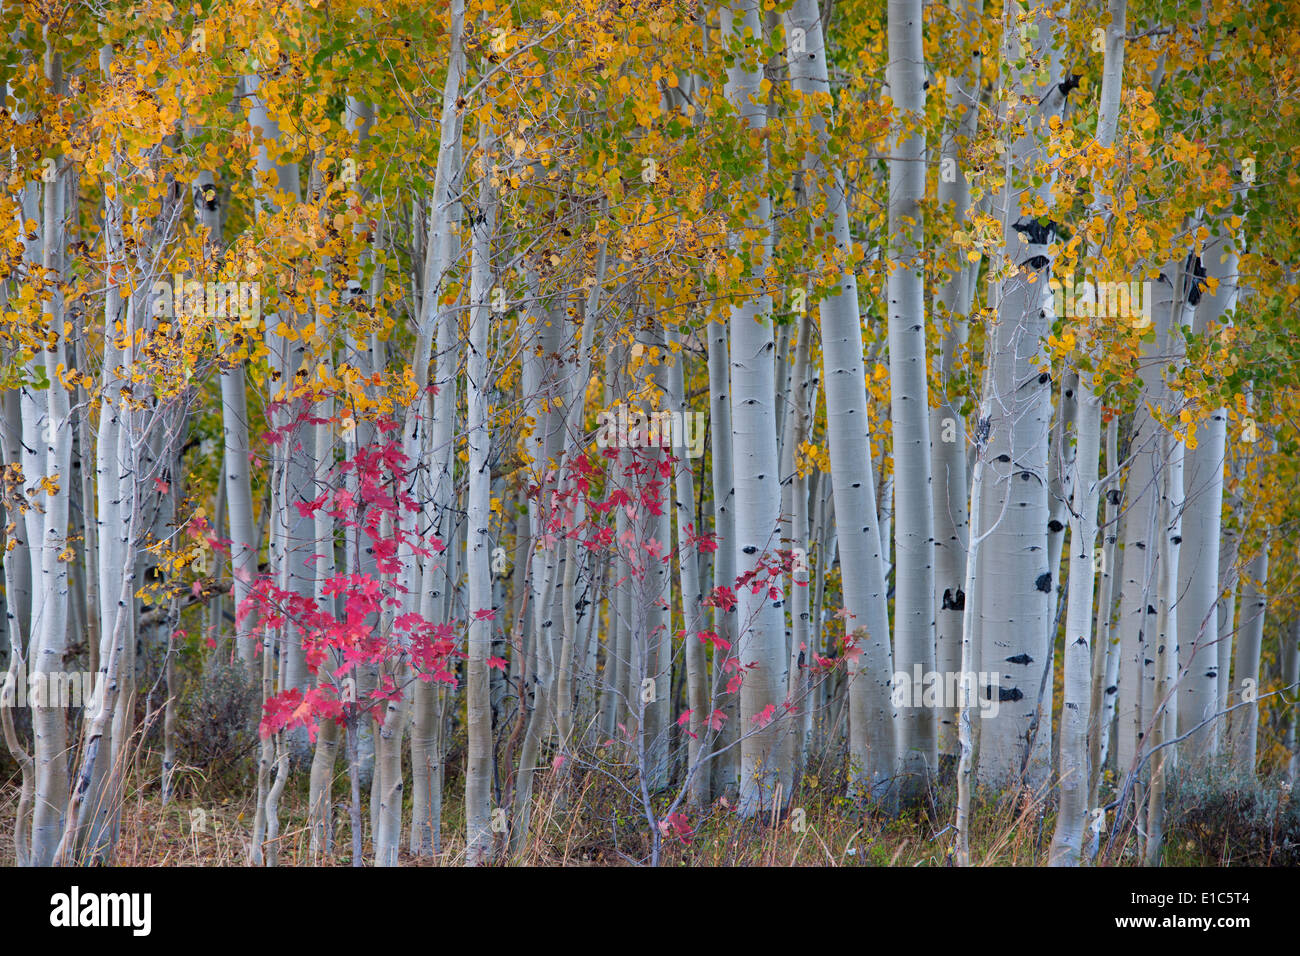 Maple and aspen trees in the national forest of the Wasatch mountains. White bark and slender tree trunks. Stock Photo